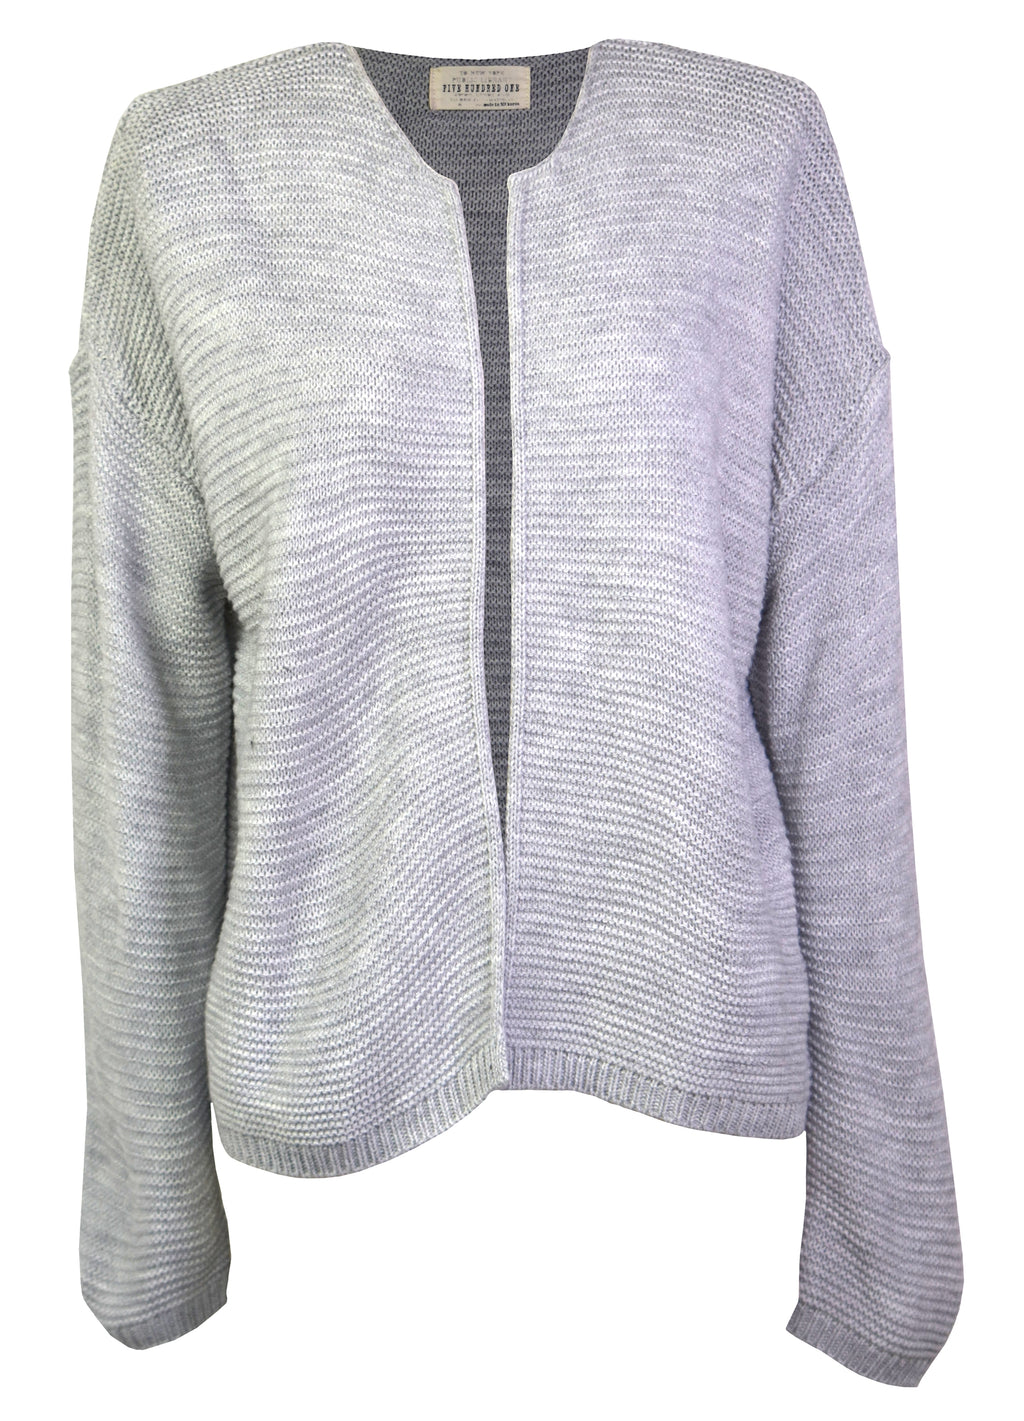 Gray knit collarless cardigan